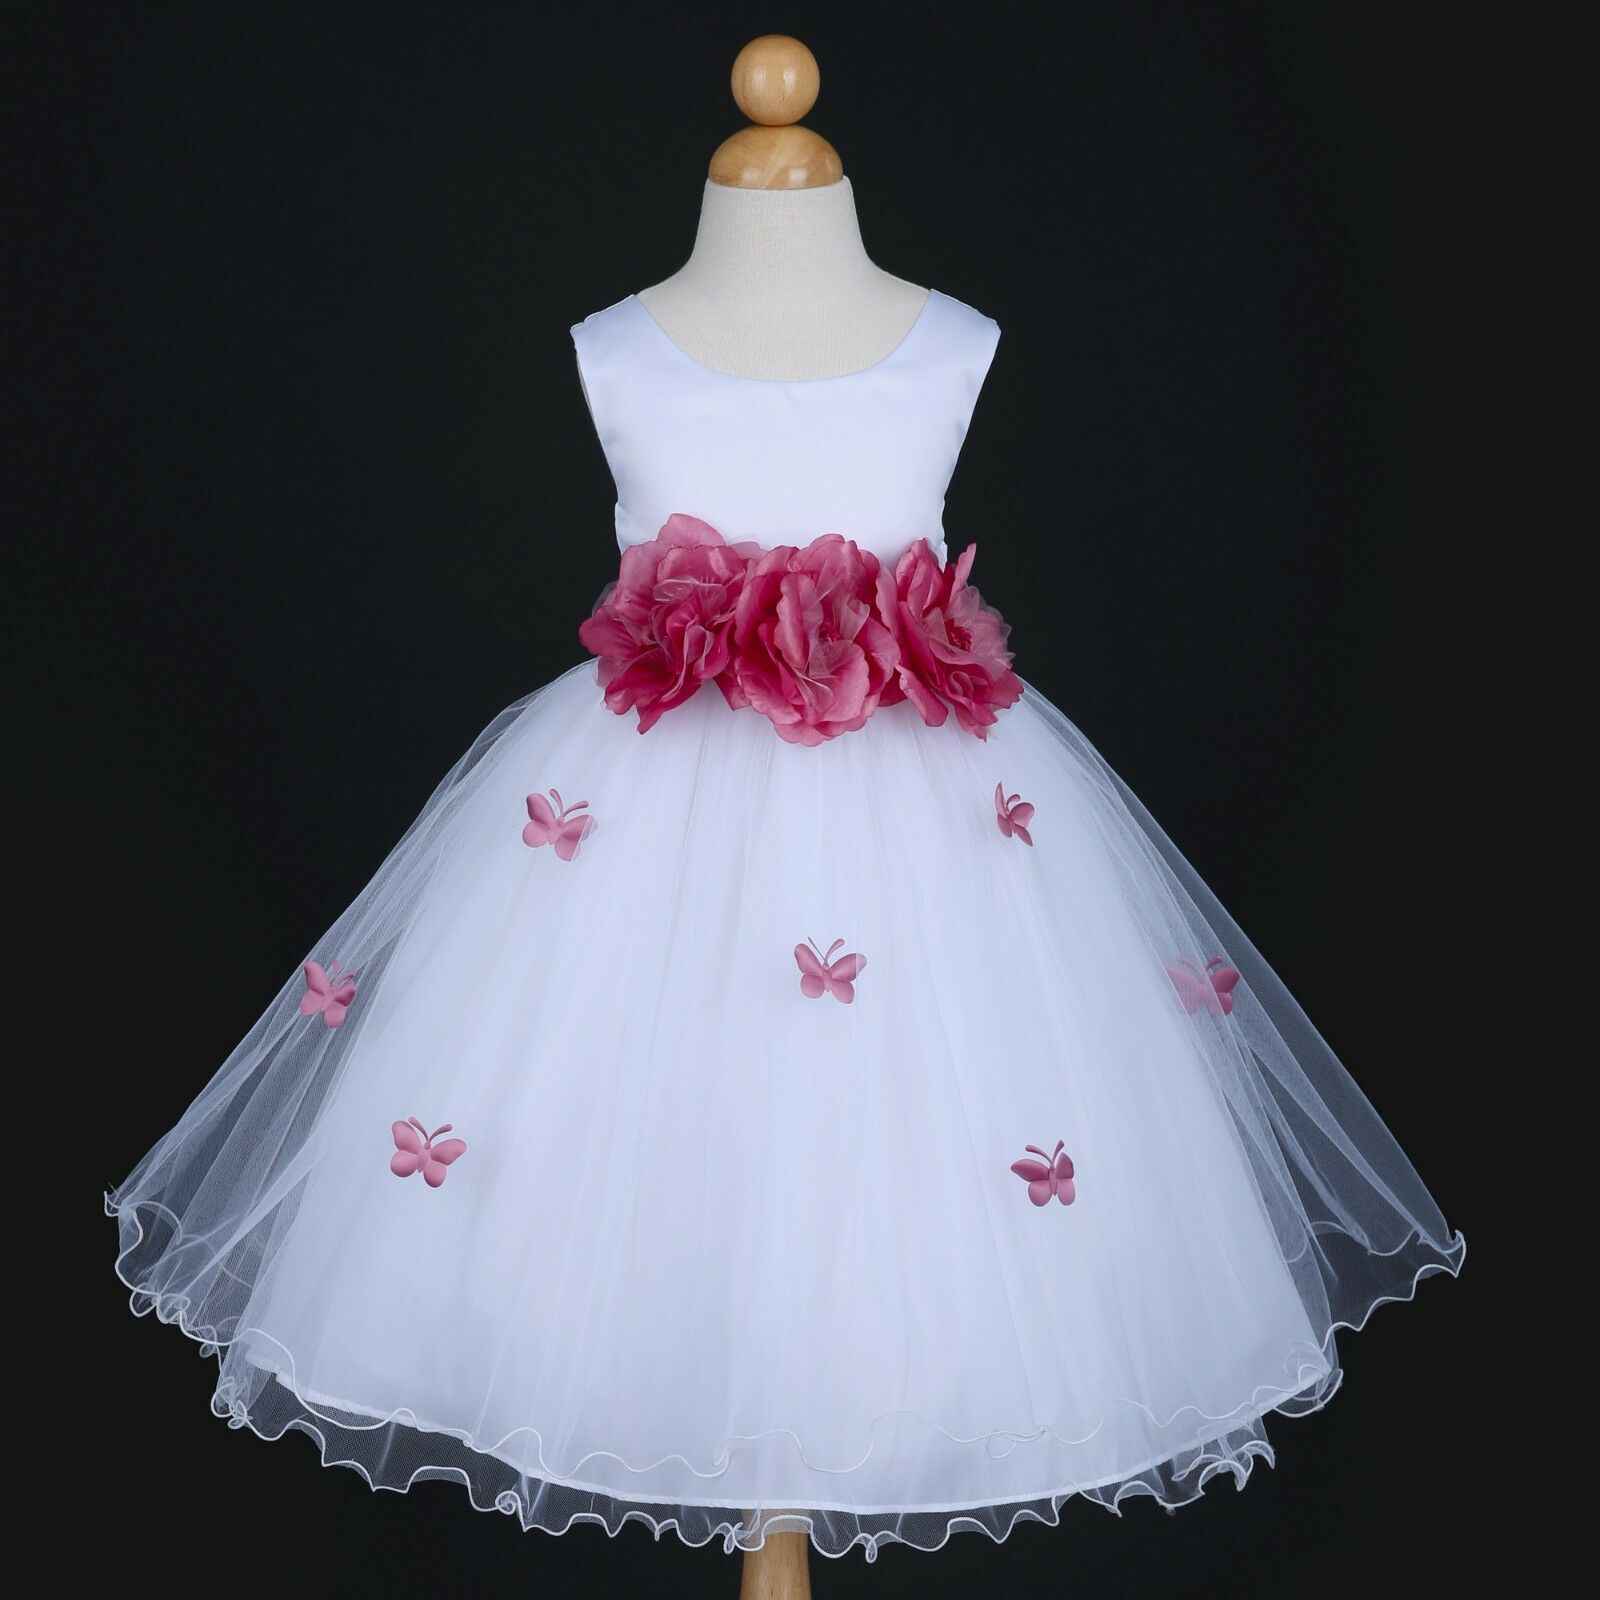 US Seller New White/Dusty Rose Wedding Party Butterfly Petals Flower Girl Dress